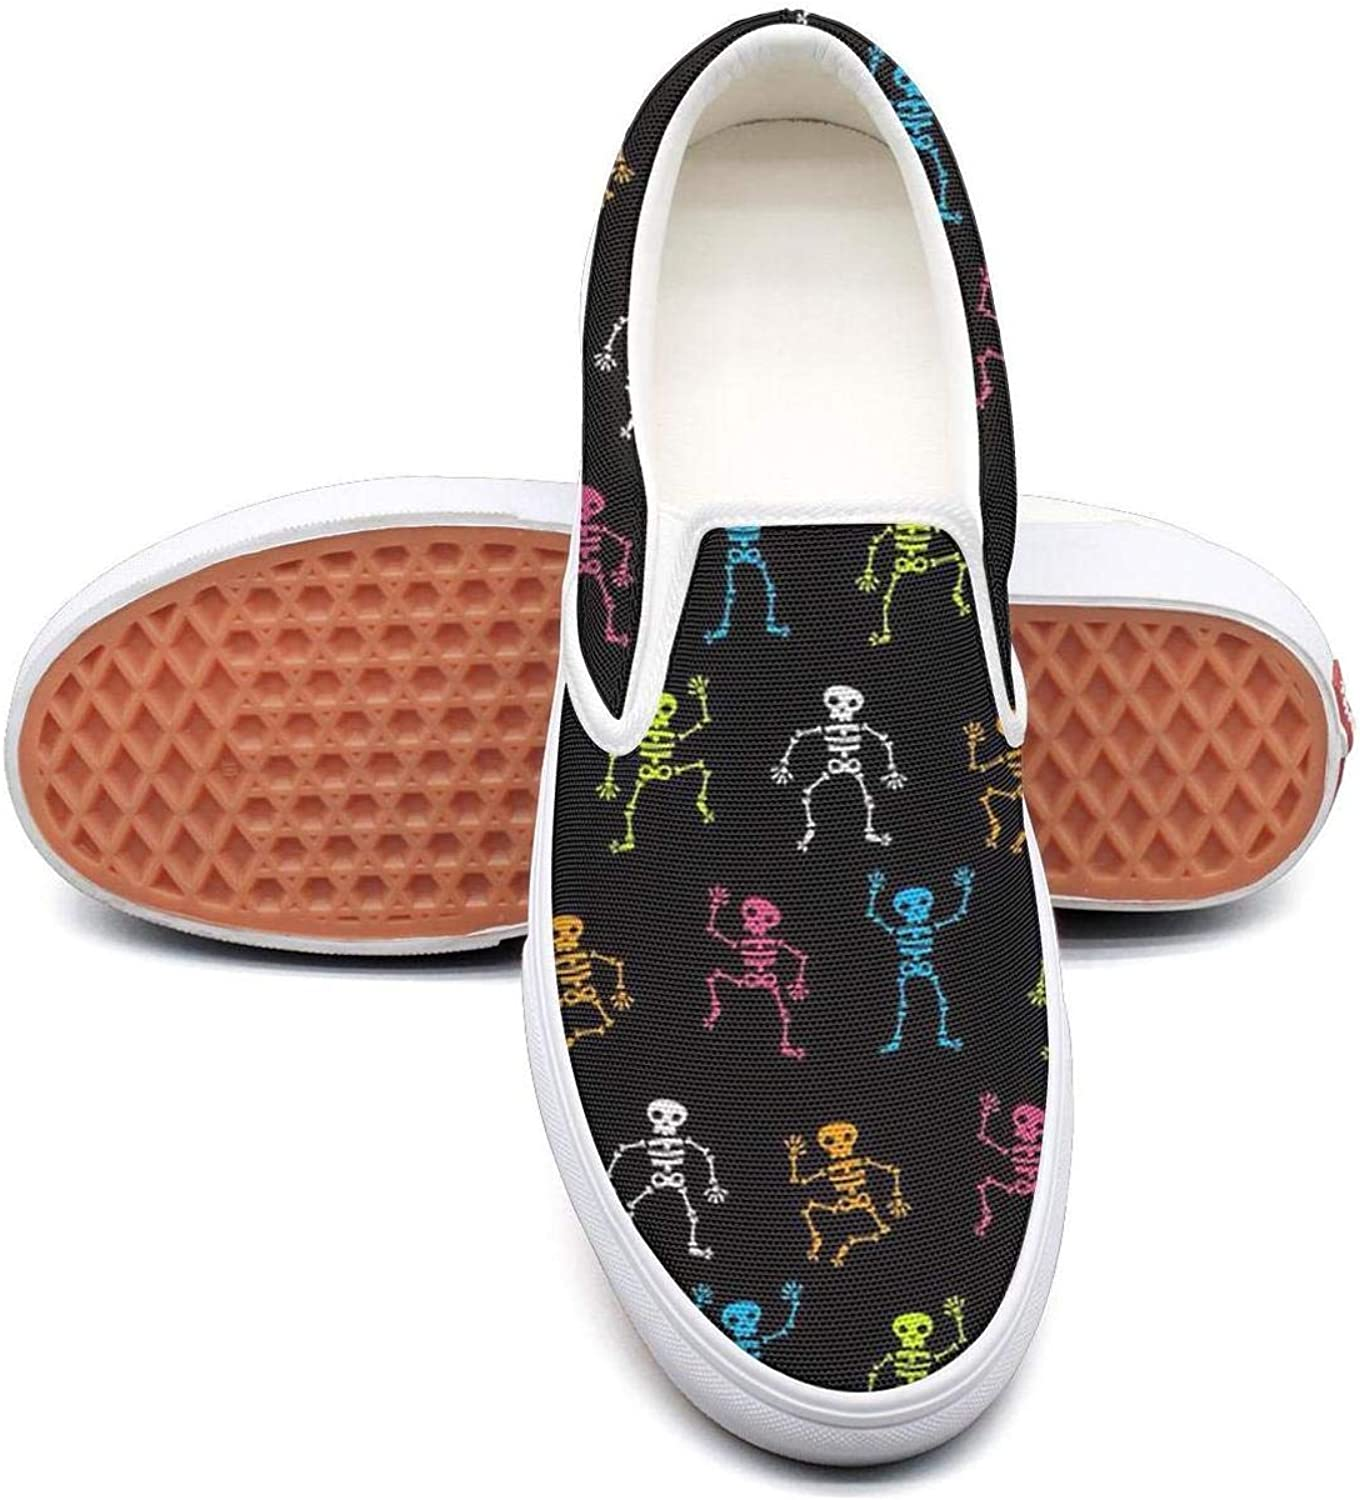 colors Dancing Skull Skeleton Slip On Canvas Upper Sneakers Canvas shoes for Women Lightweight